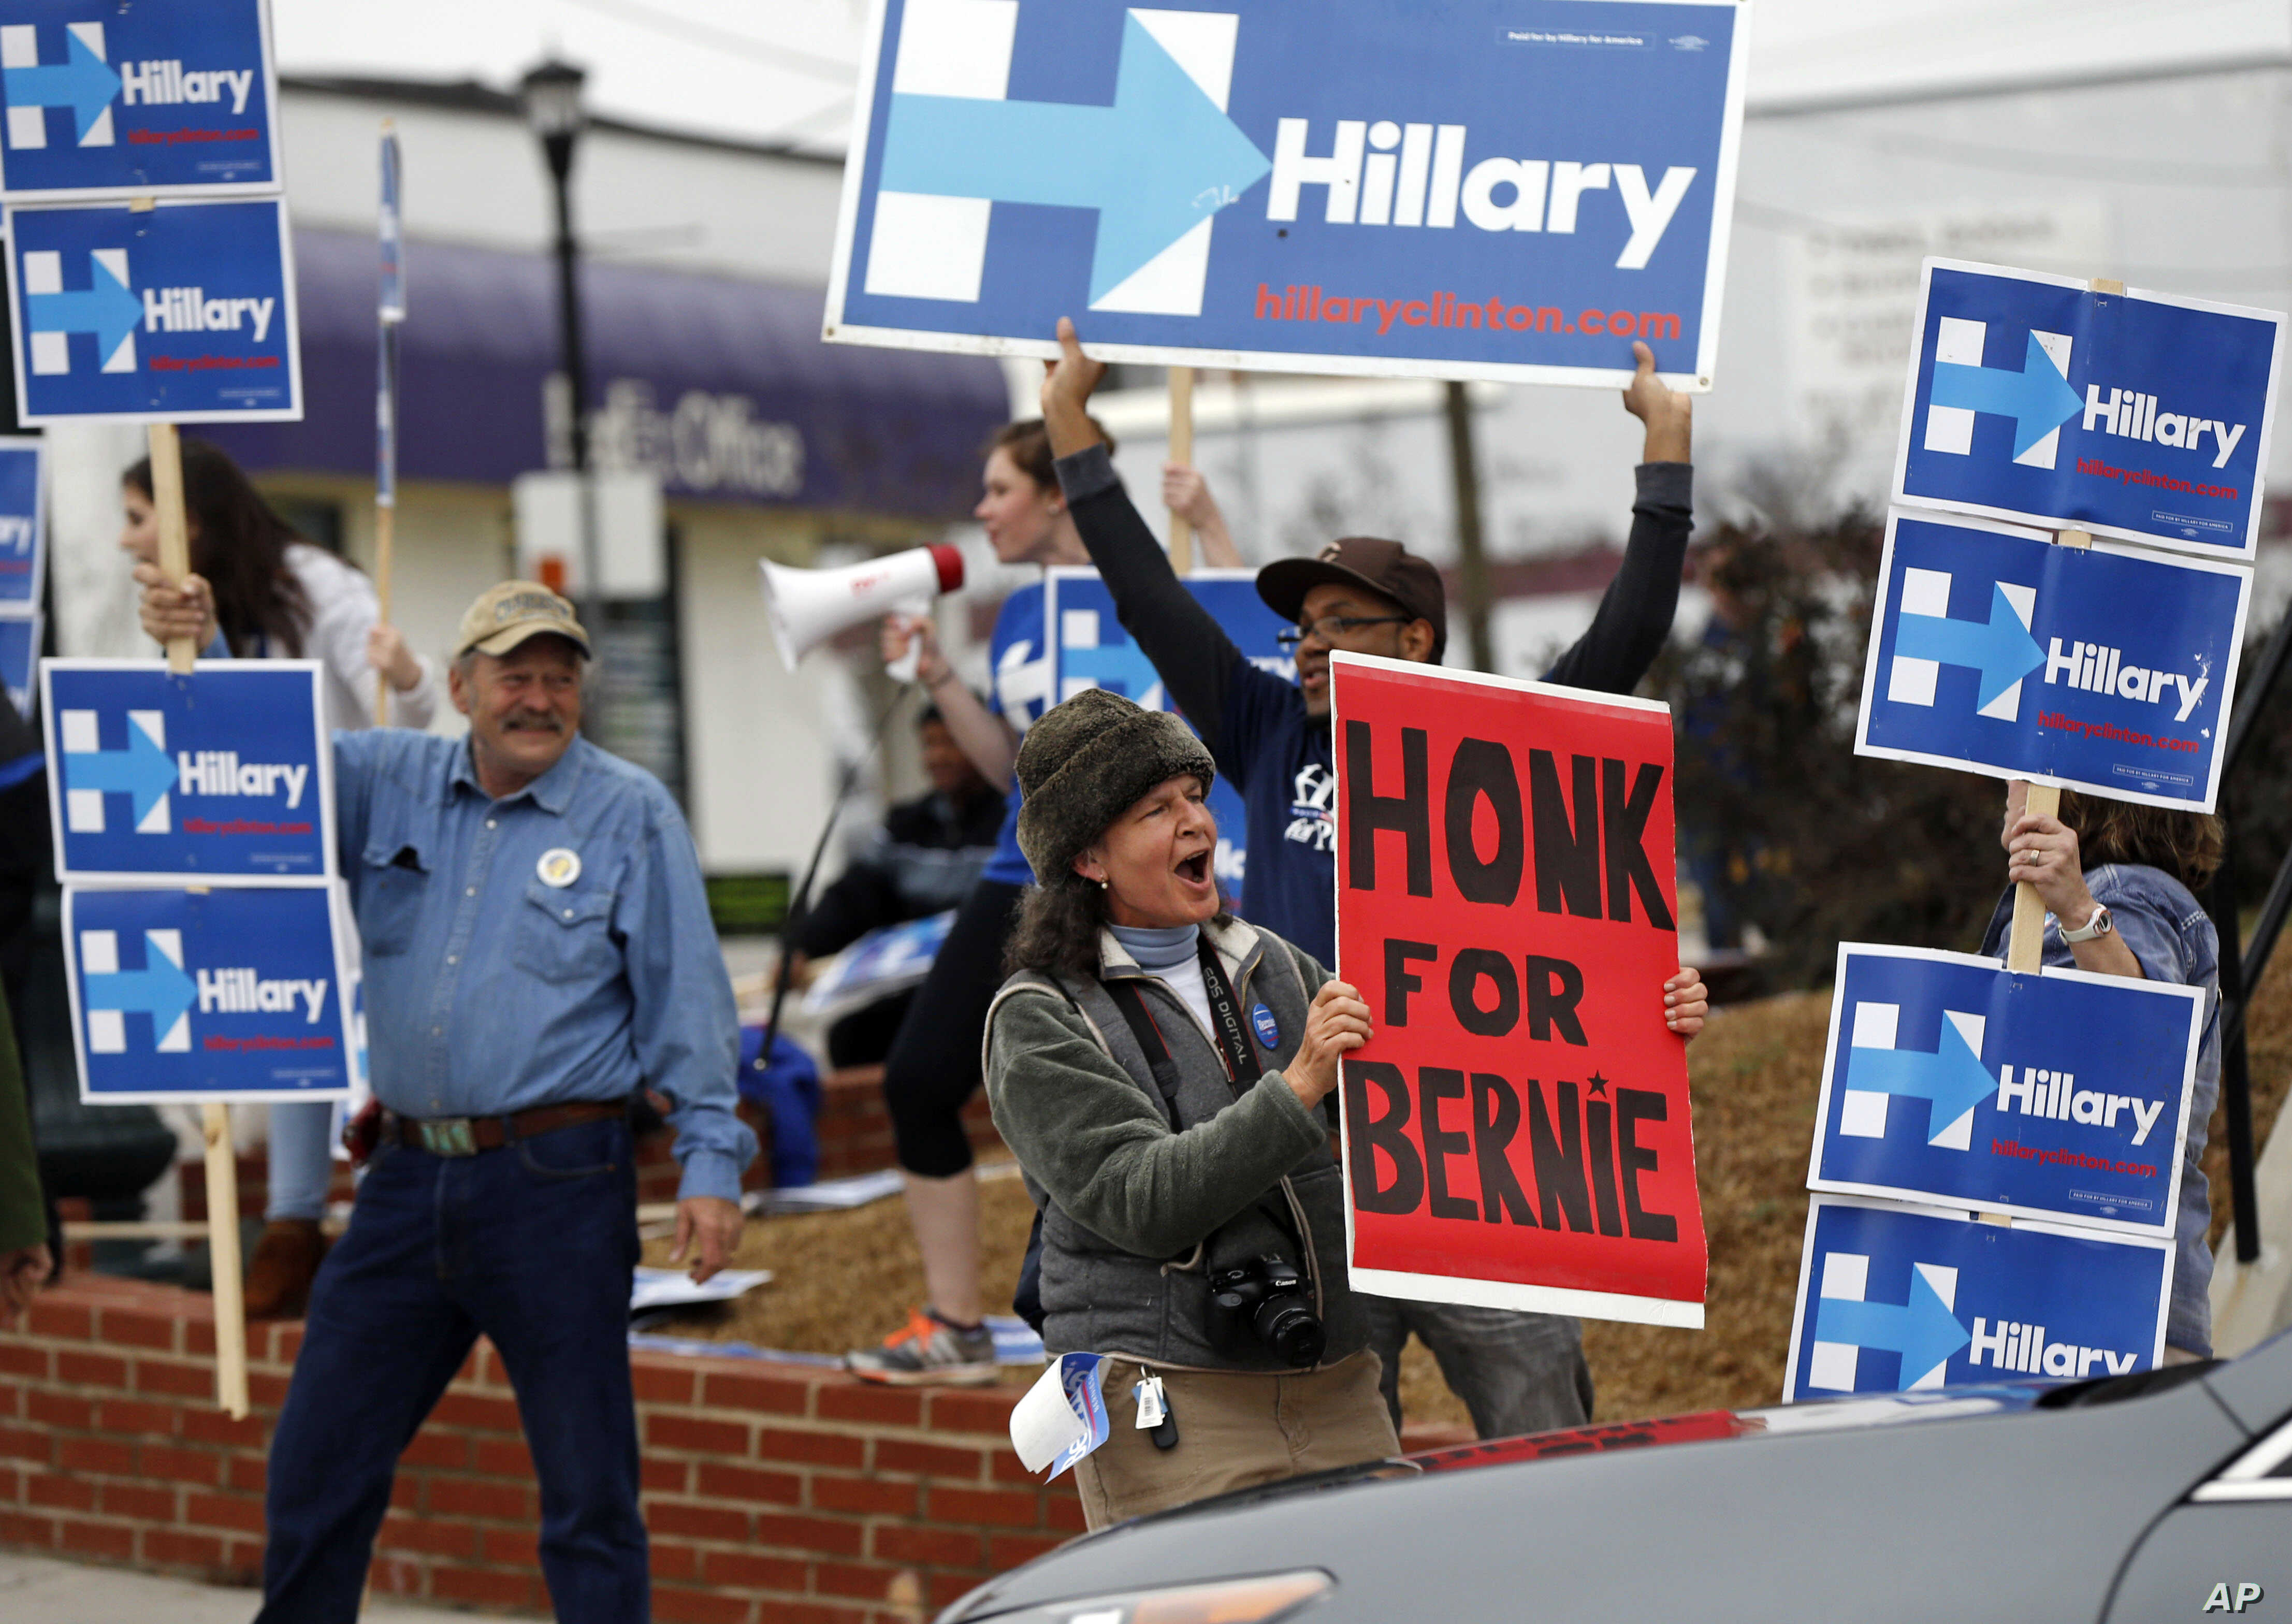 FILE - A Sen. Bernie Sanders supporter cheers for passing motorists to honk, amongst a group of Hillary Clinton backers outside the University of South Carolina School of Law in this Feb. 23, 2016 photo.